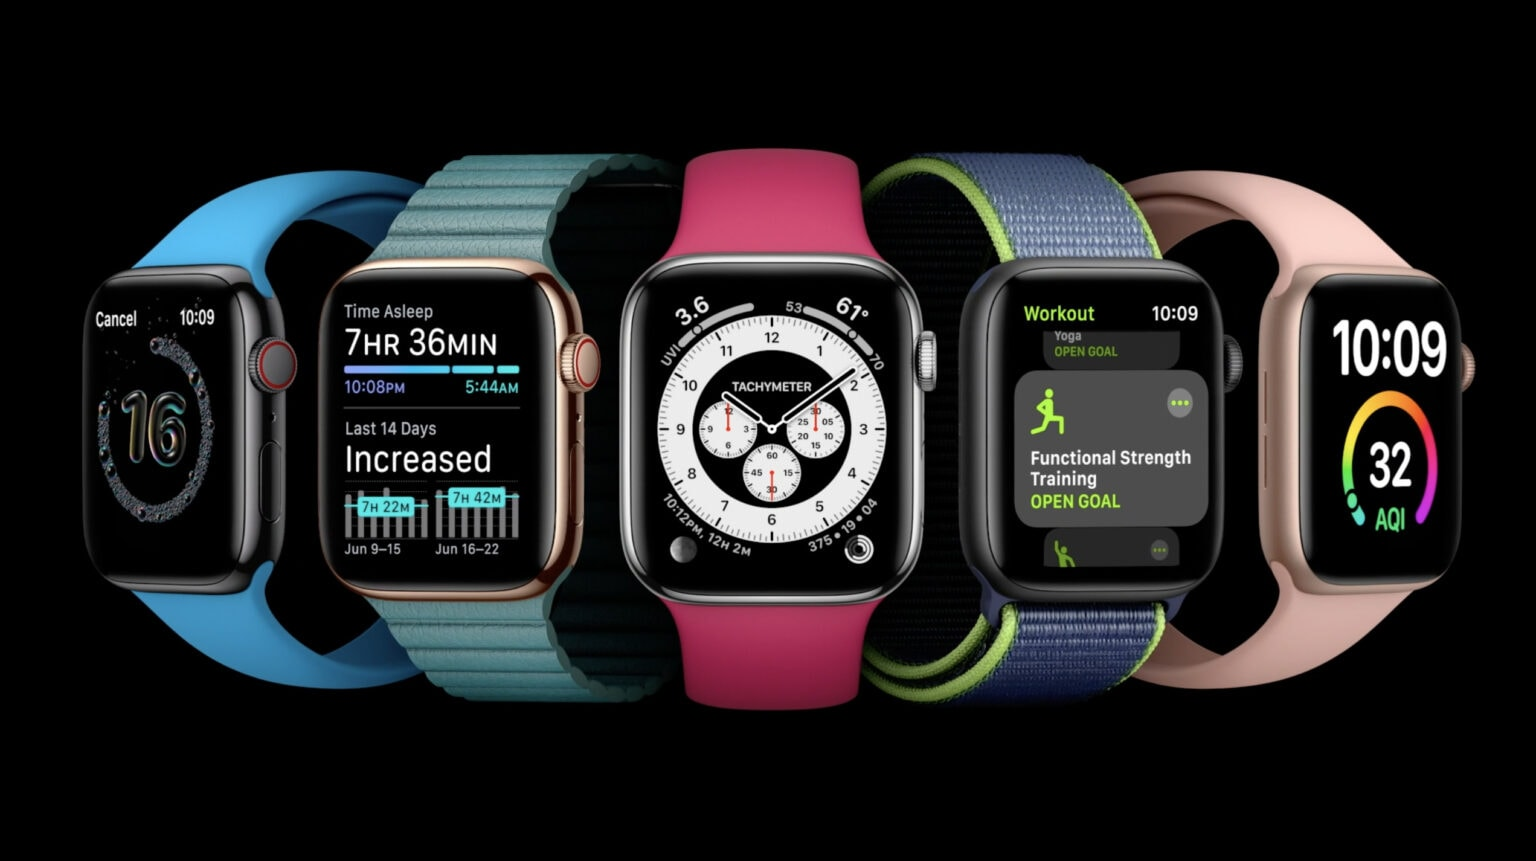 watchOS 7 introduces new complications and watch face sharing